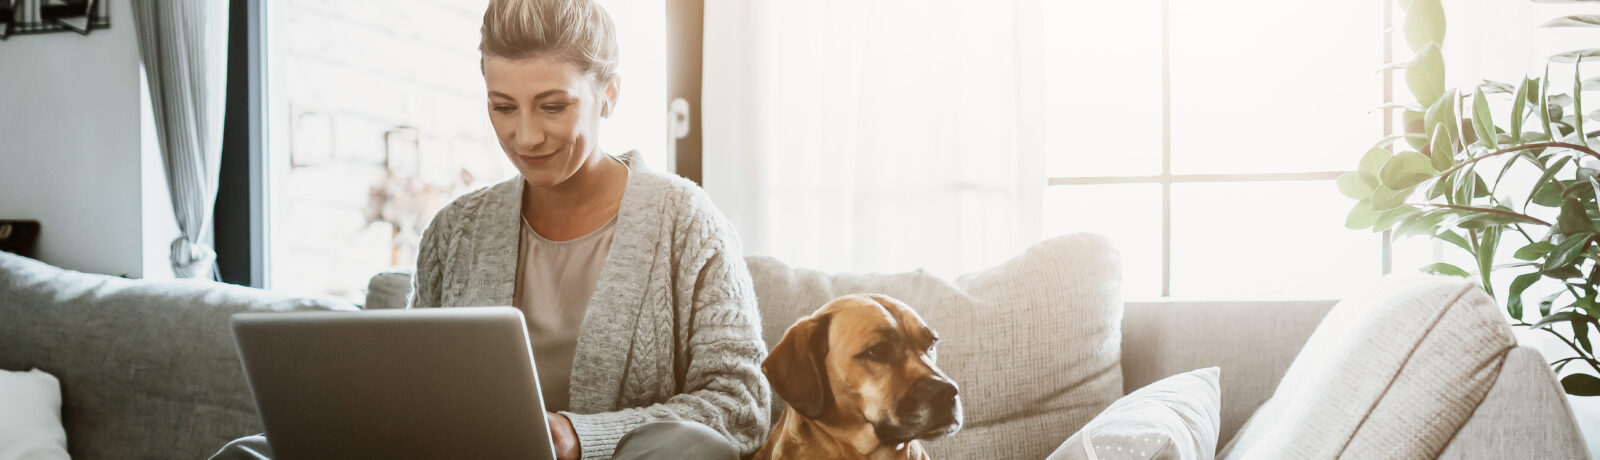 Middle-aged woman working from home next to her pet dog.